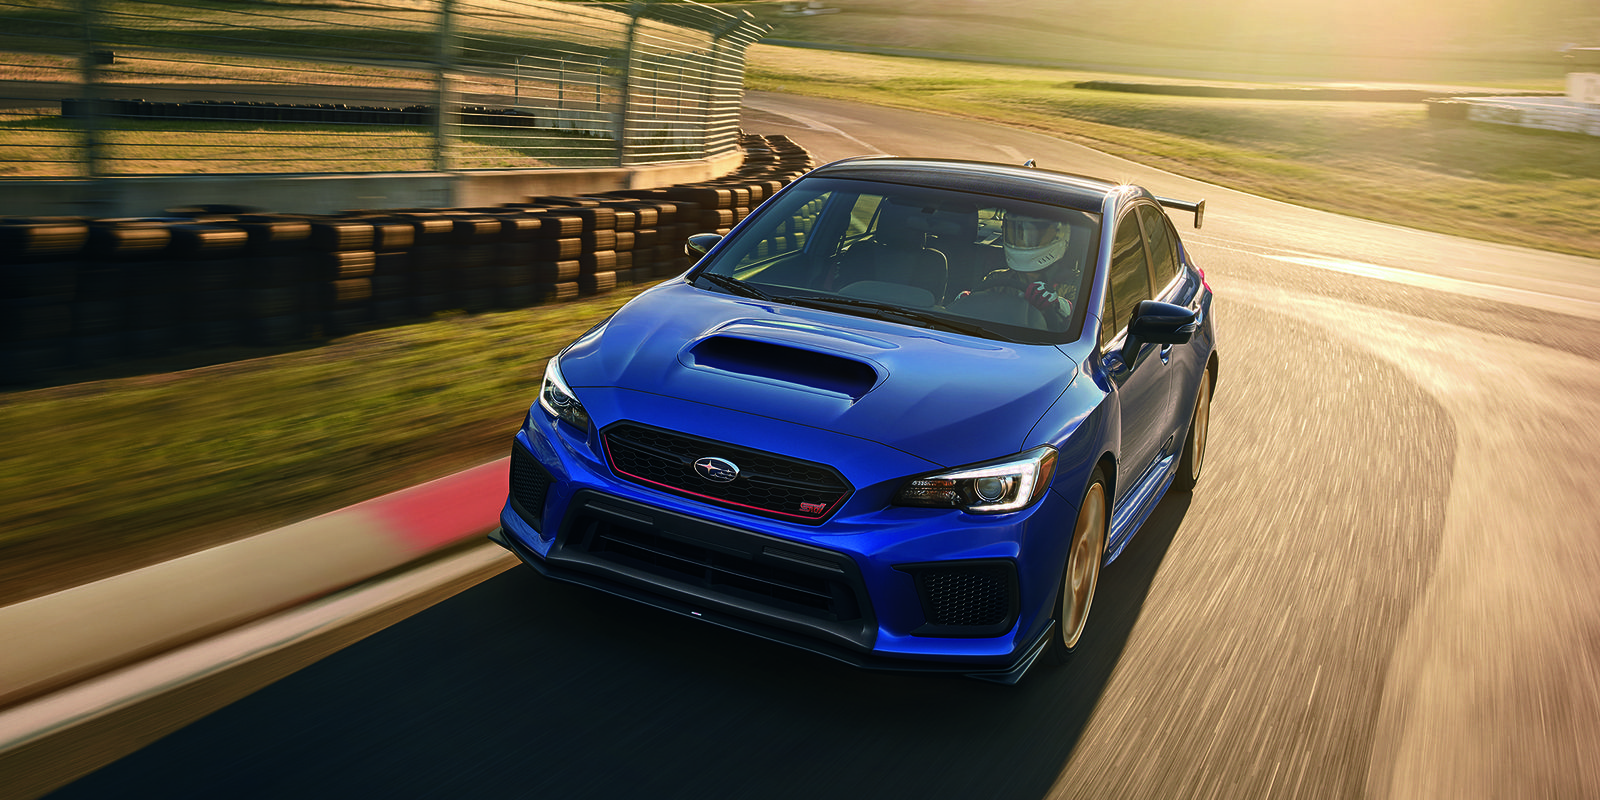 The 2018 Subaru WRX STI Type RA Is a Hardcore Track Ready Weapon